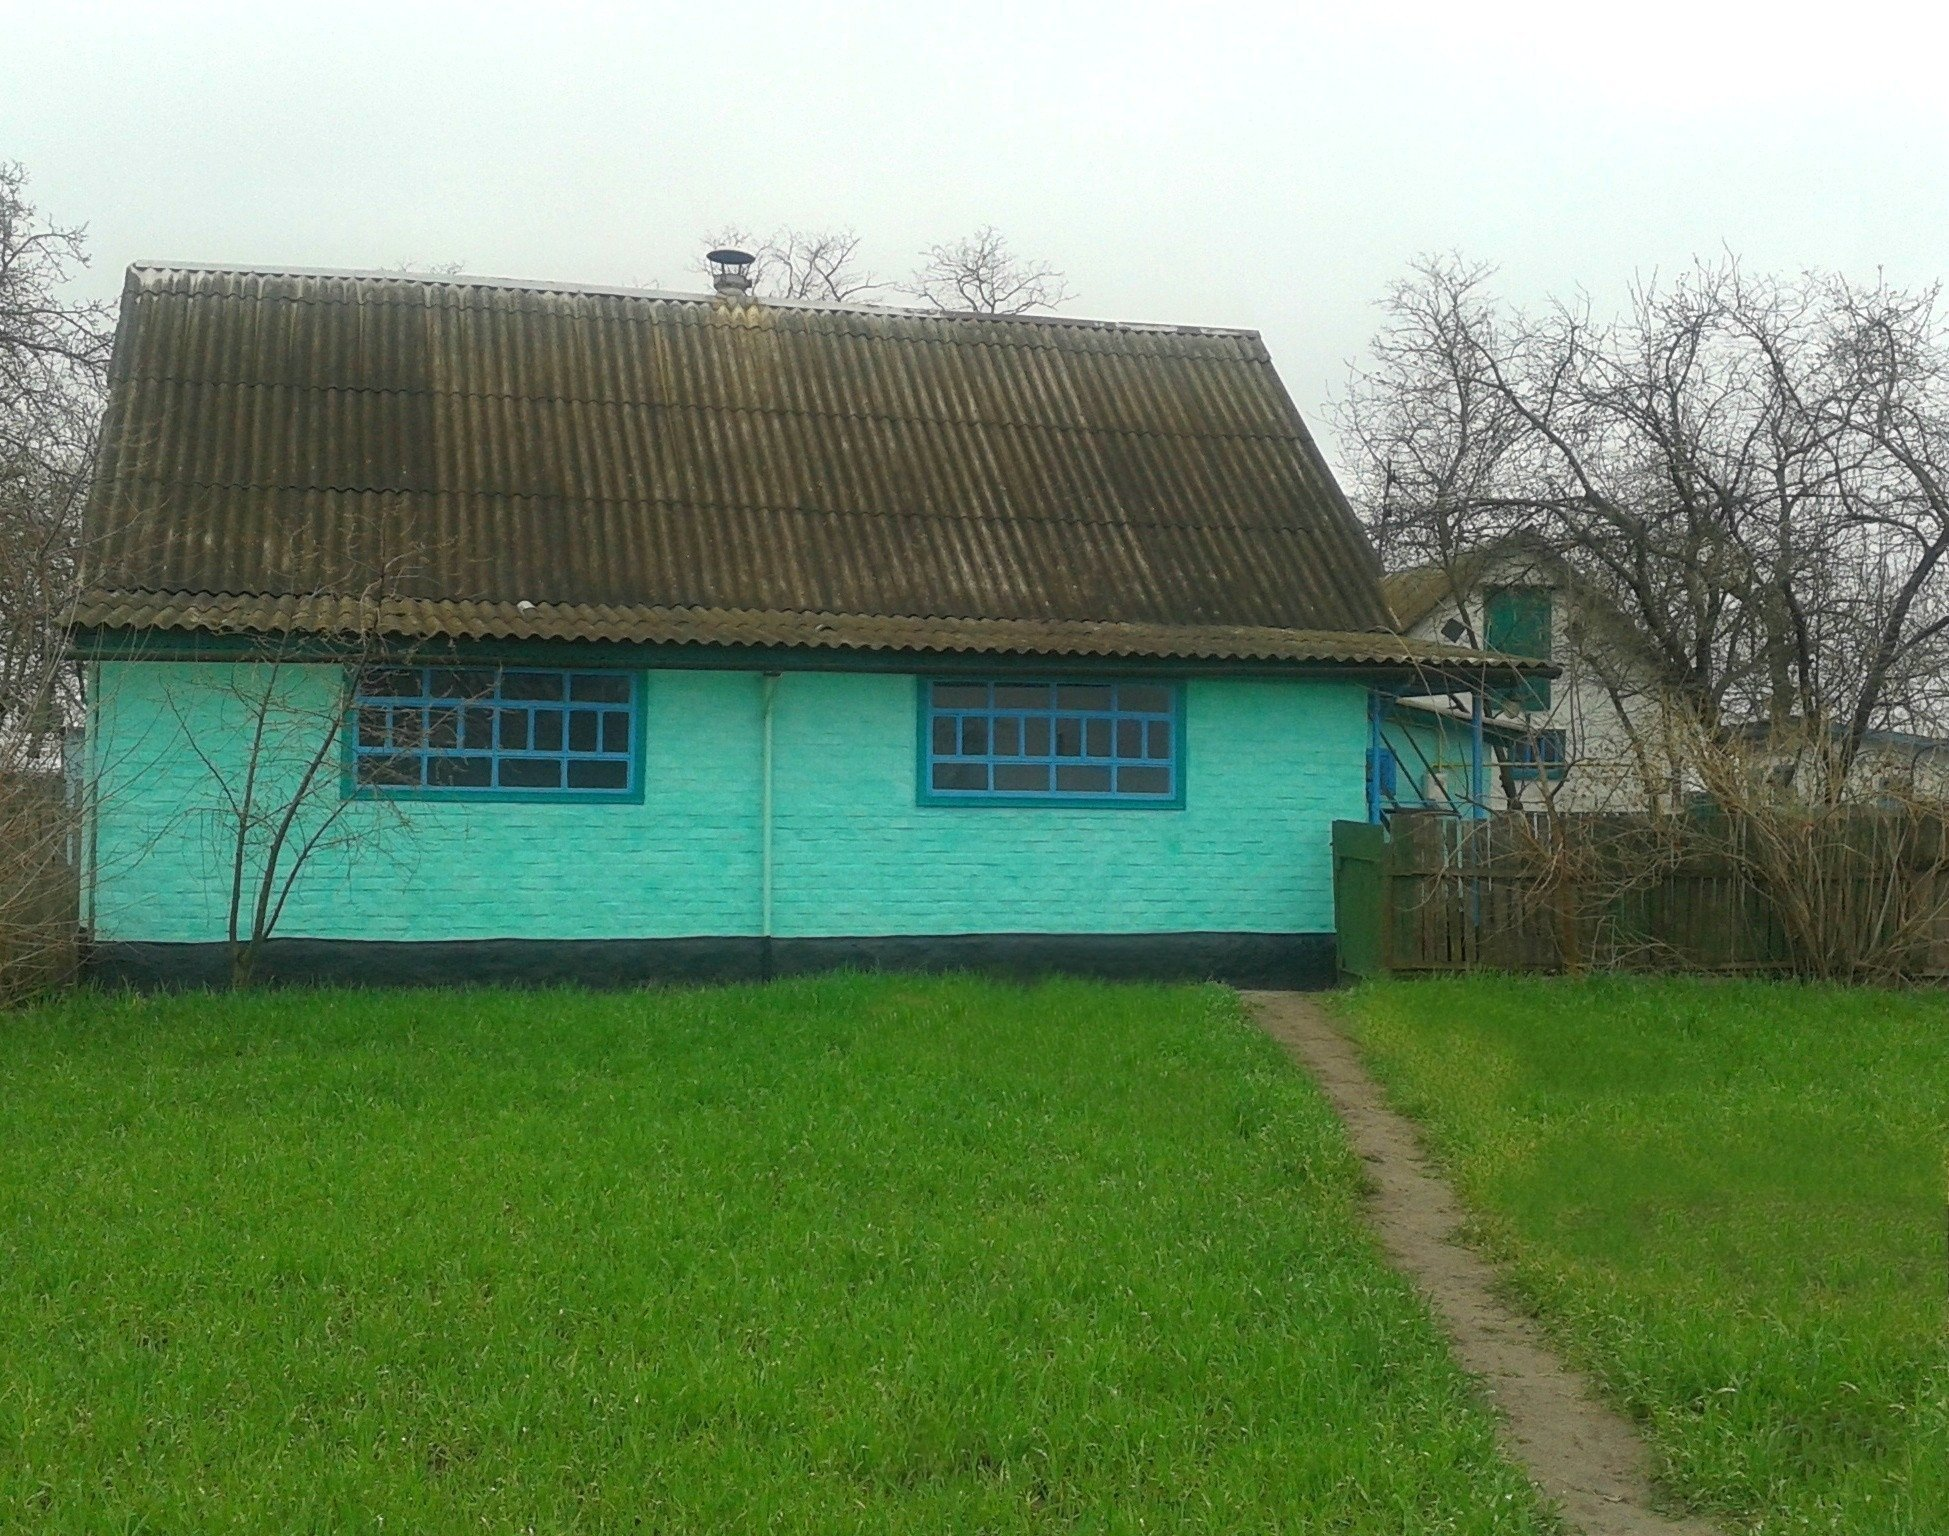 Sale home in Kornyn. Announcement № 4402